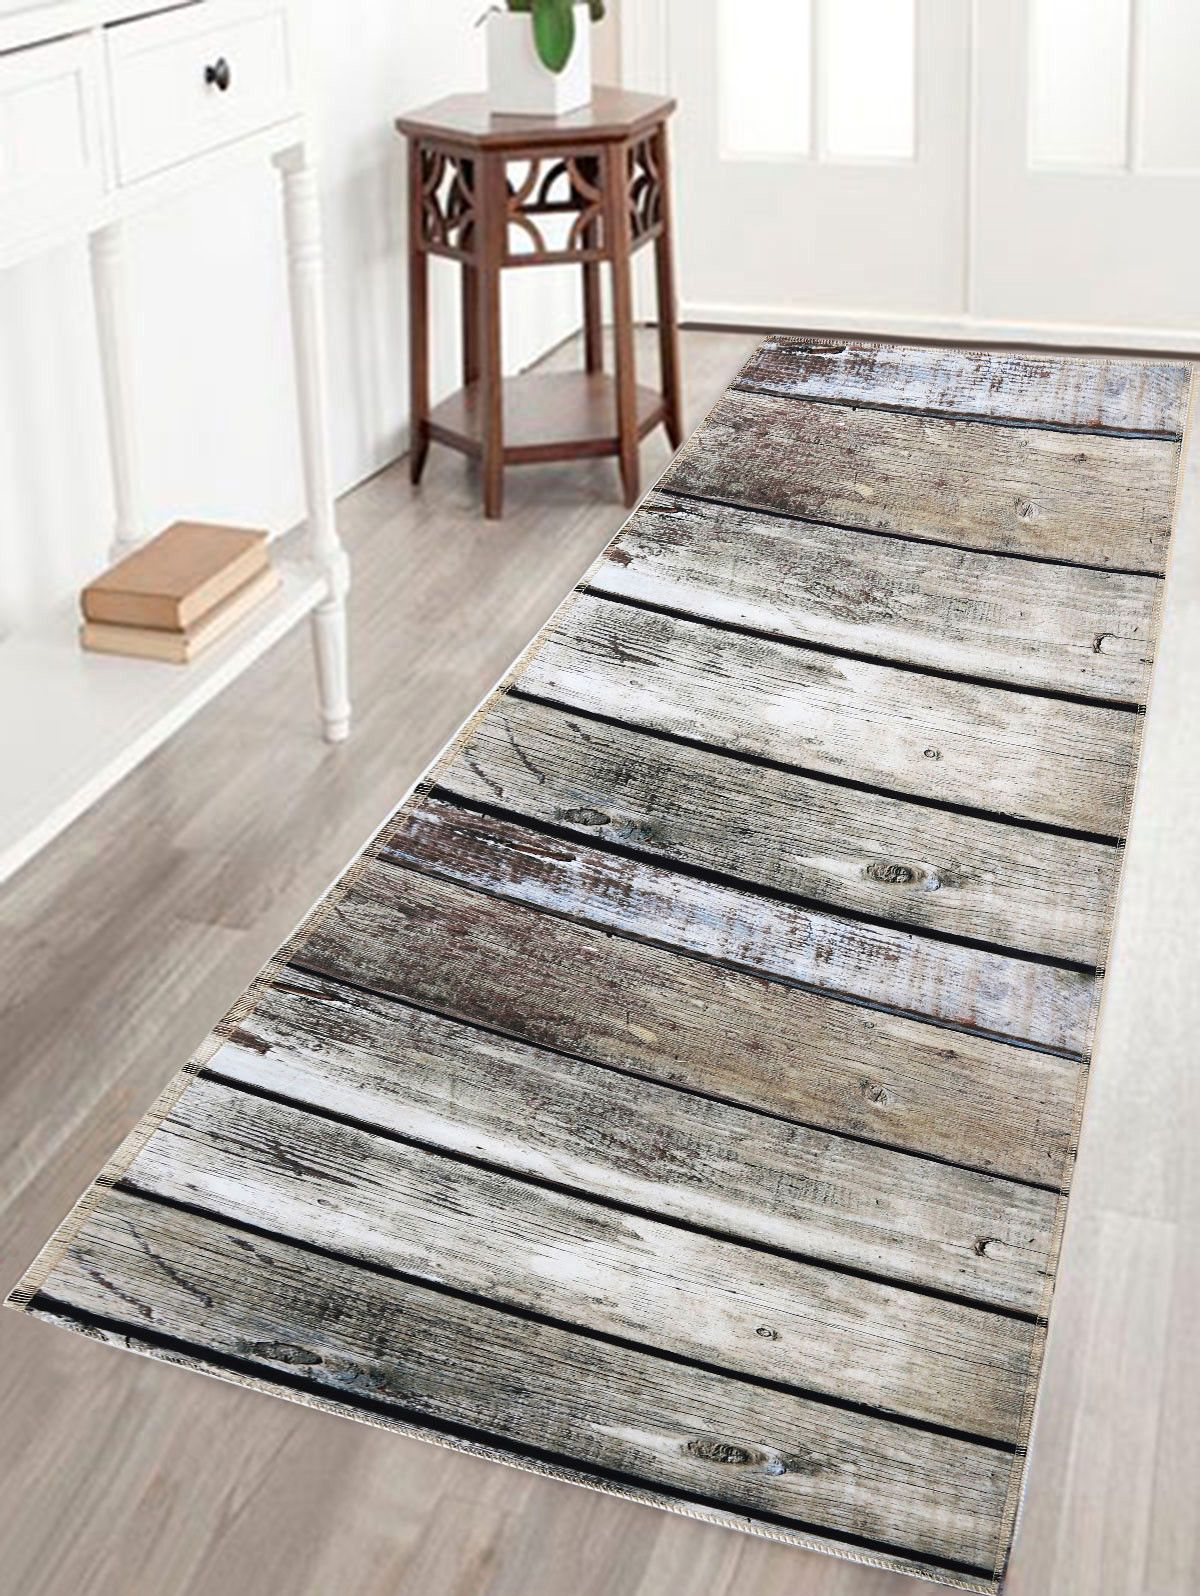 Antislip Water Absorption Bathroom Rug With Wood Grain Print - Printed bathroom rugs for bathroom decorating ideas